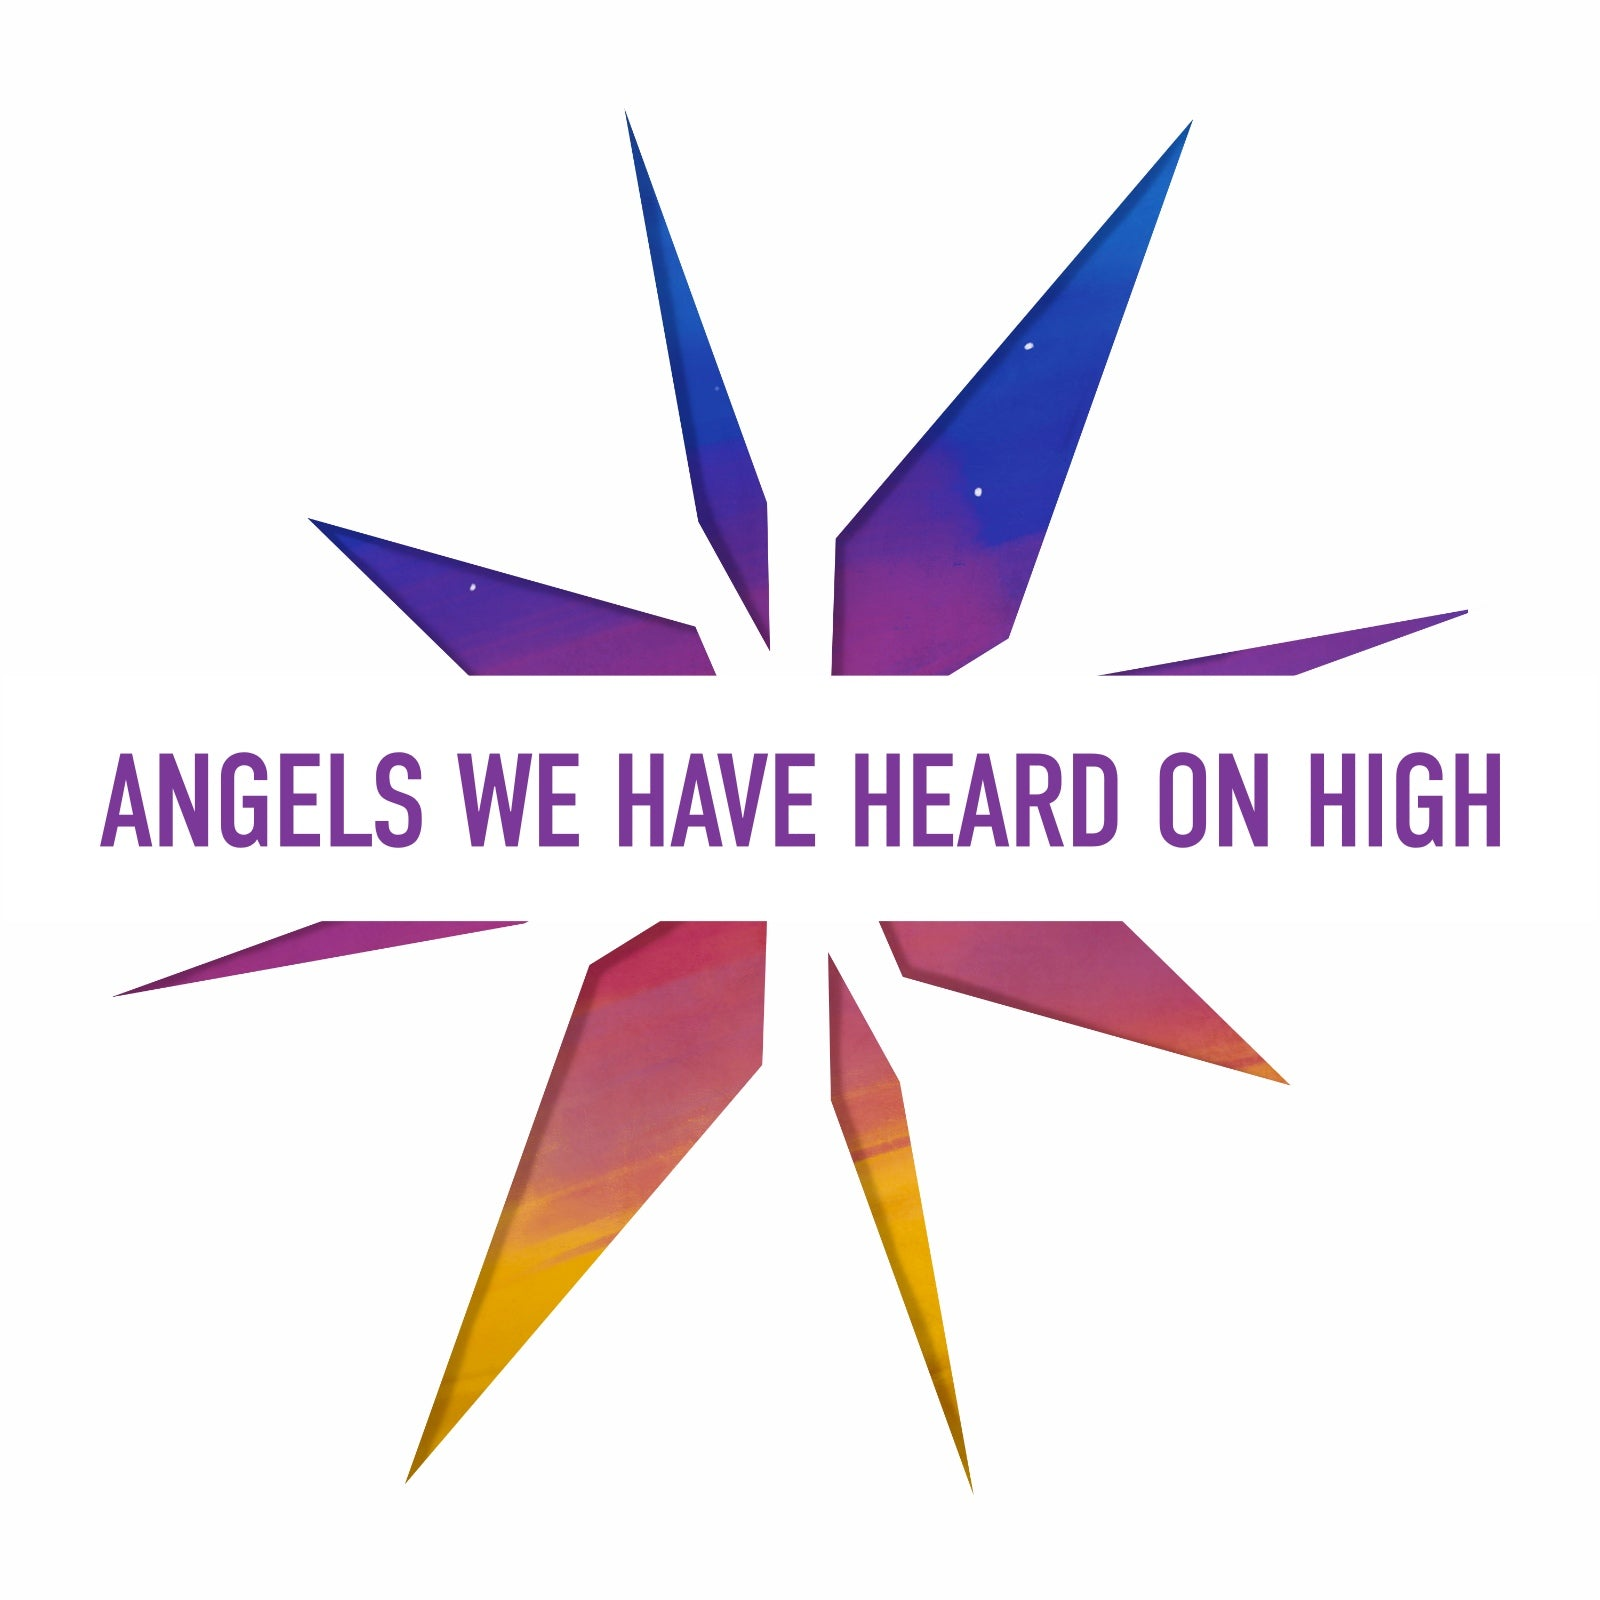 Angels We Have Heard on High (backing track)